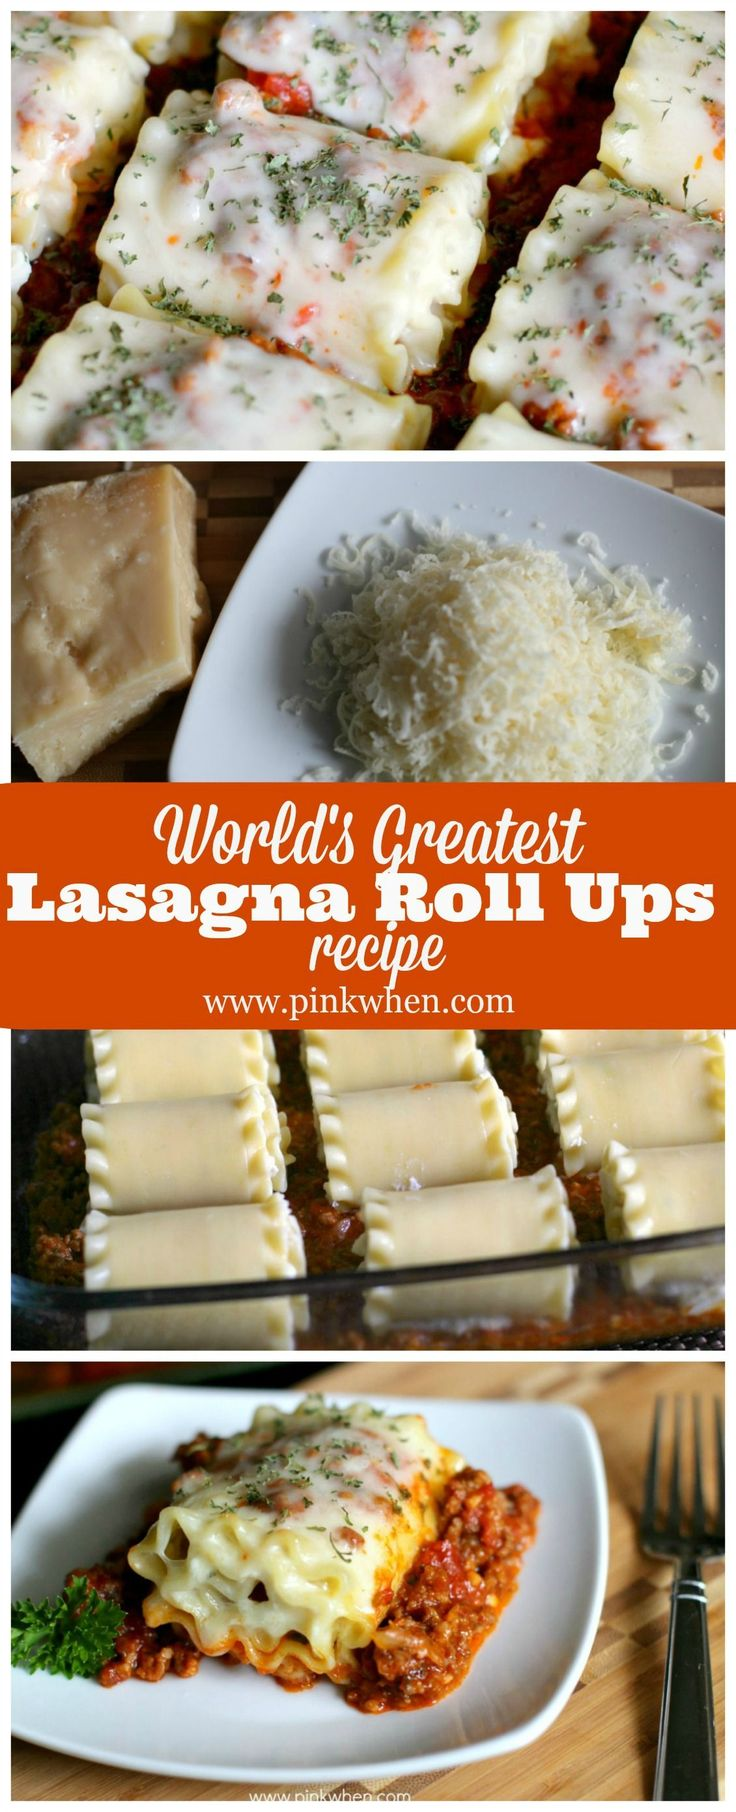 You NEED to make this recipe. It's the most amazing Lasagna Roll Ups recipe around.